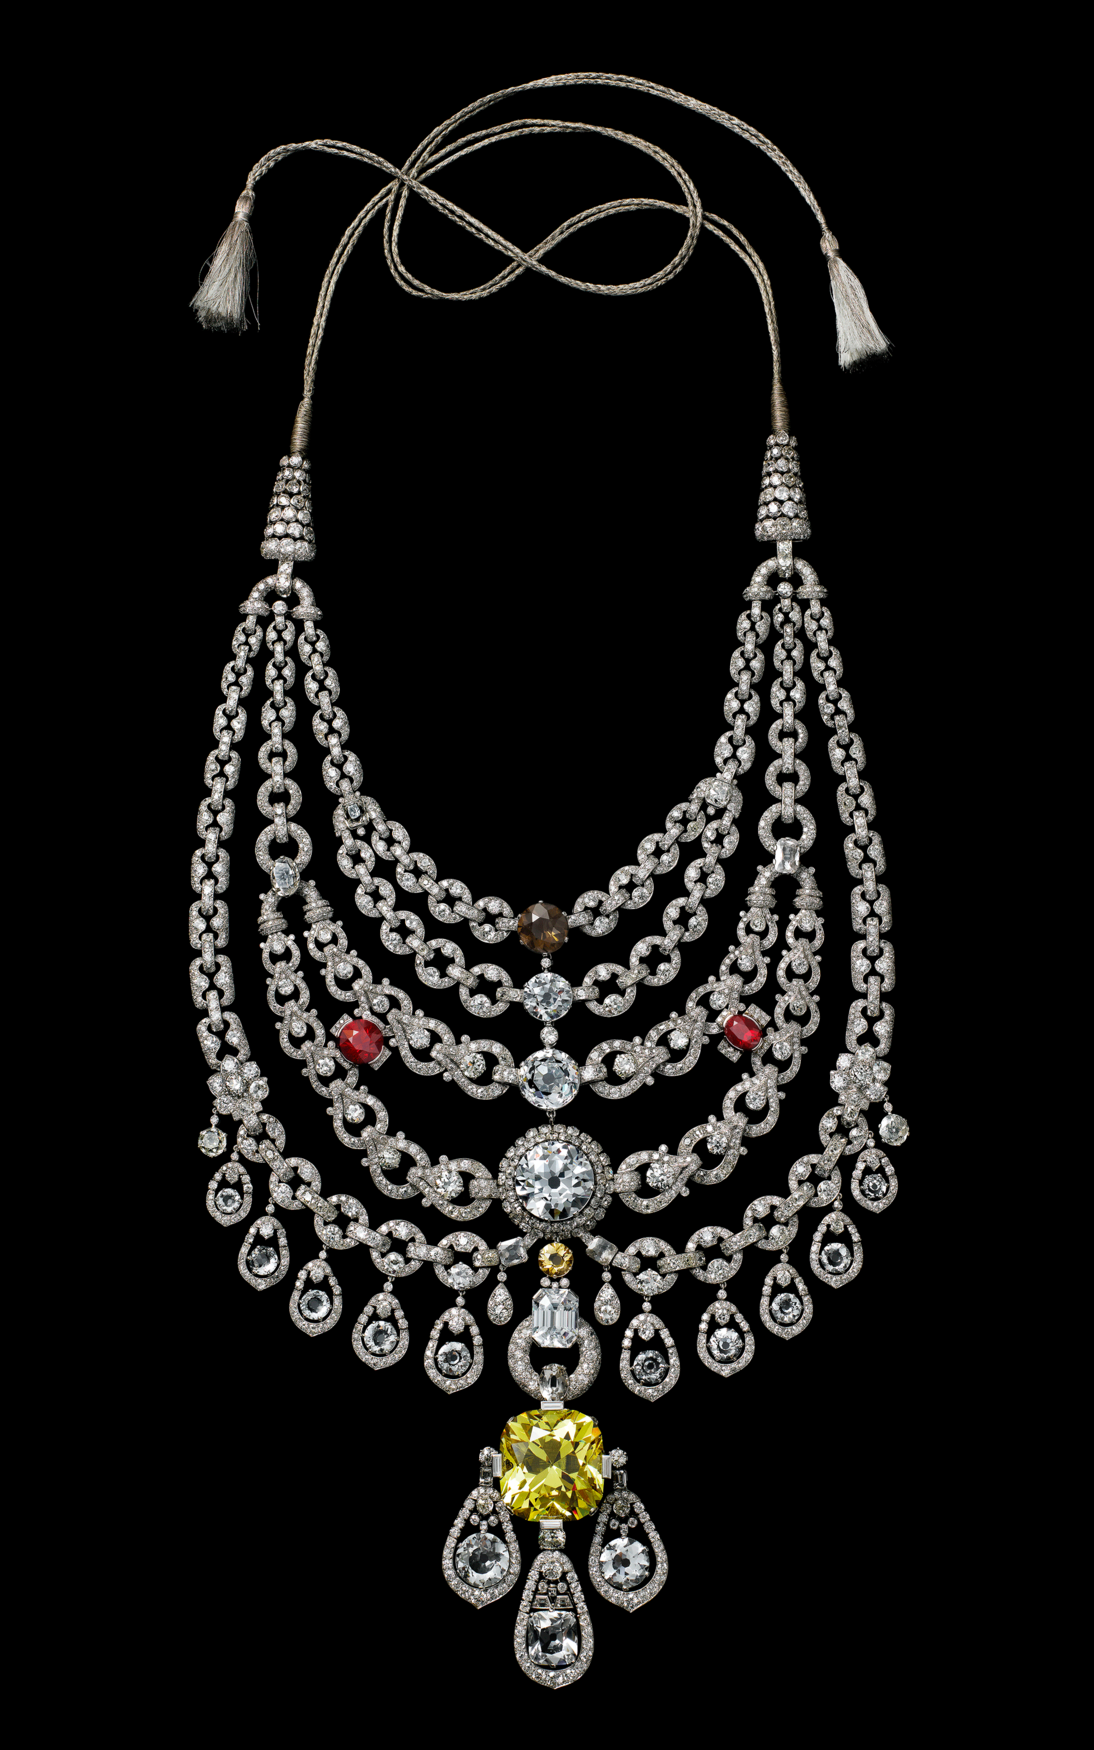 Necklace, Cartier Paris, special order, 1928. Platinum, old- and rose-cut diamonds (chain and links), one cushion-shaped yellow zirconia, four white zirconias, thirteen white topazes, two synthetic rubies, one smoky quartz, one citrine